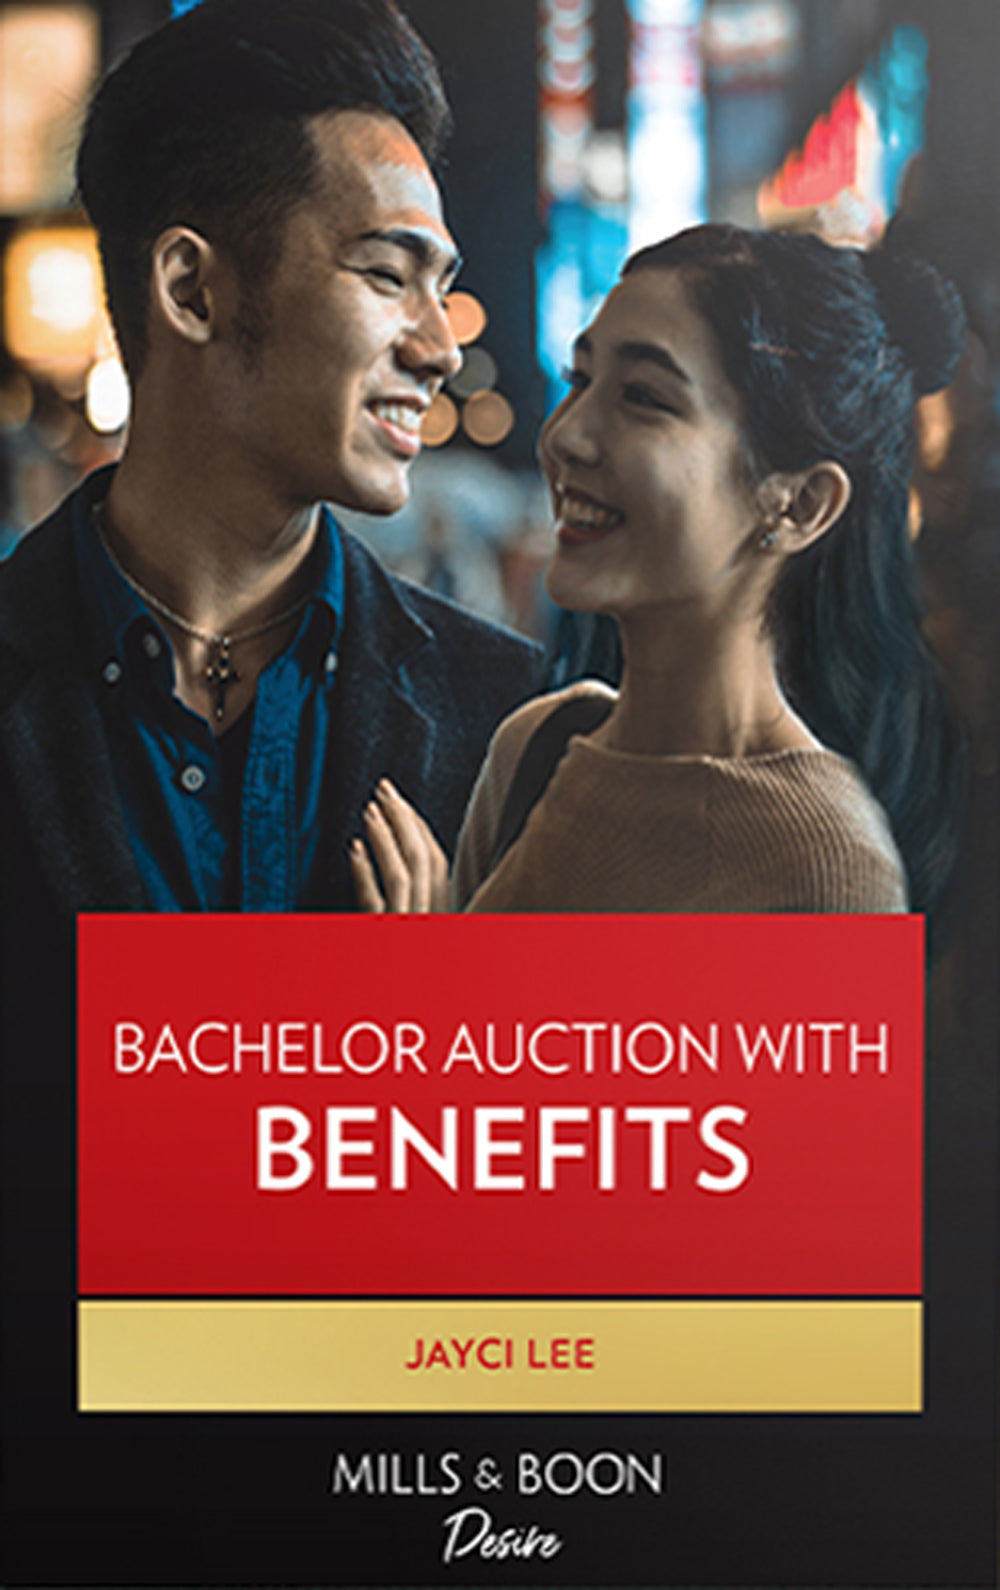 Bachelor Auction with Benefits